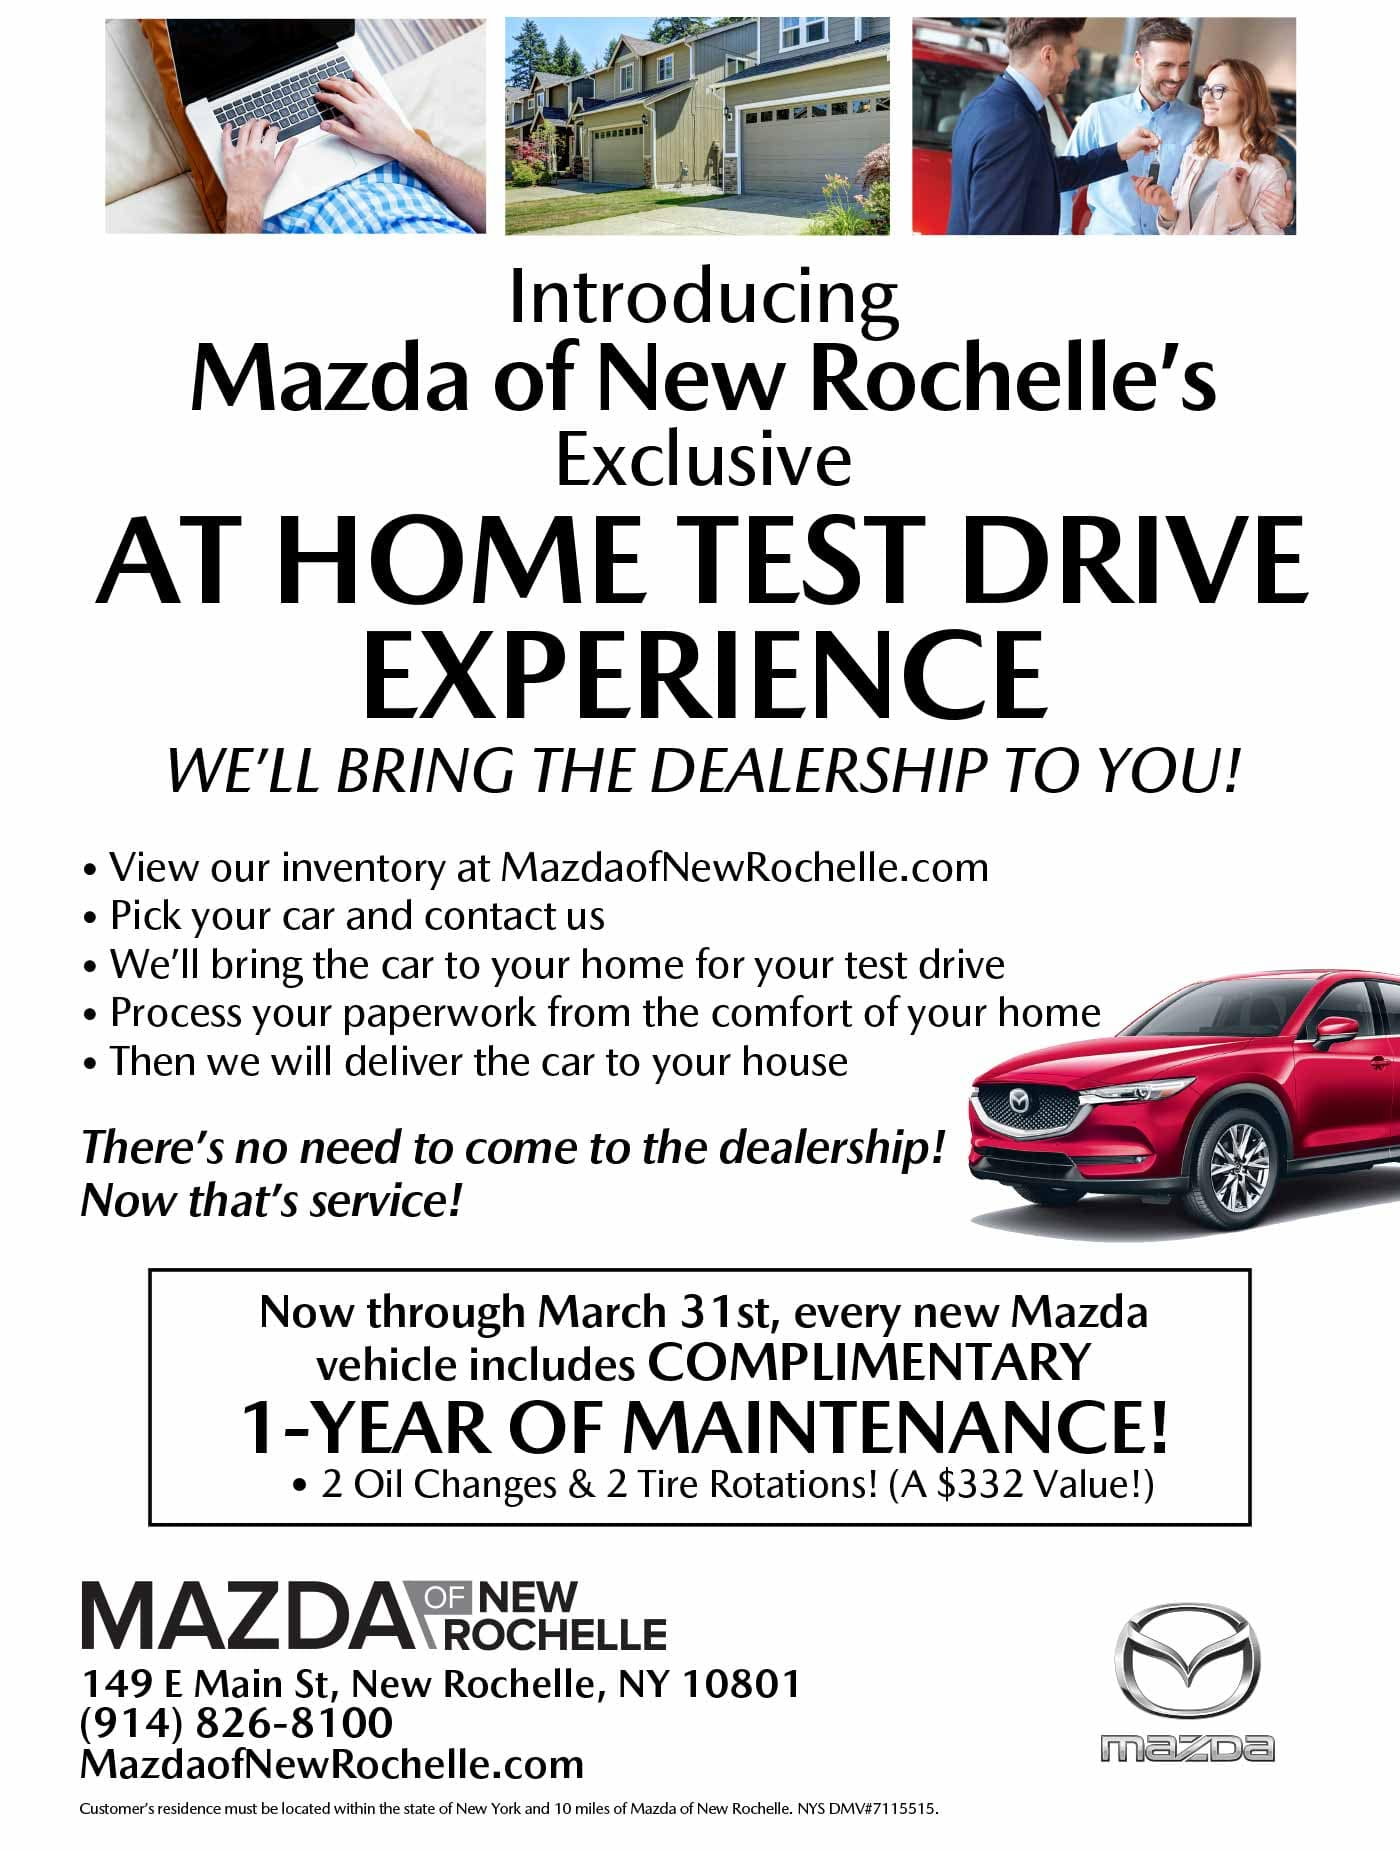 Mazda New Rochelle At Home Test Drive Mazda dealer NY New York